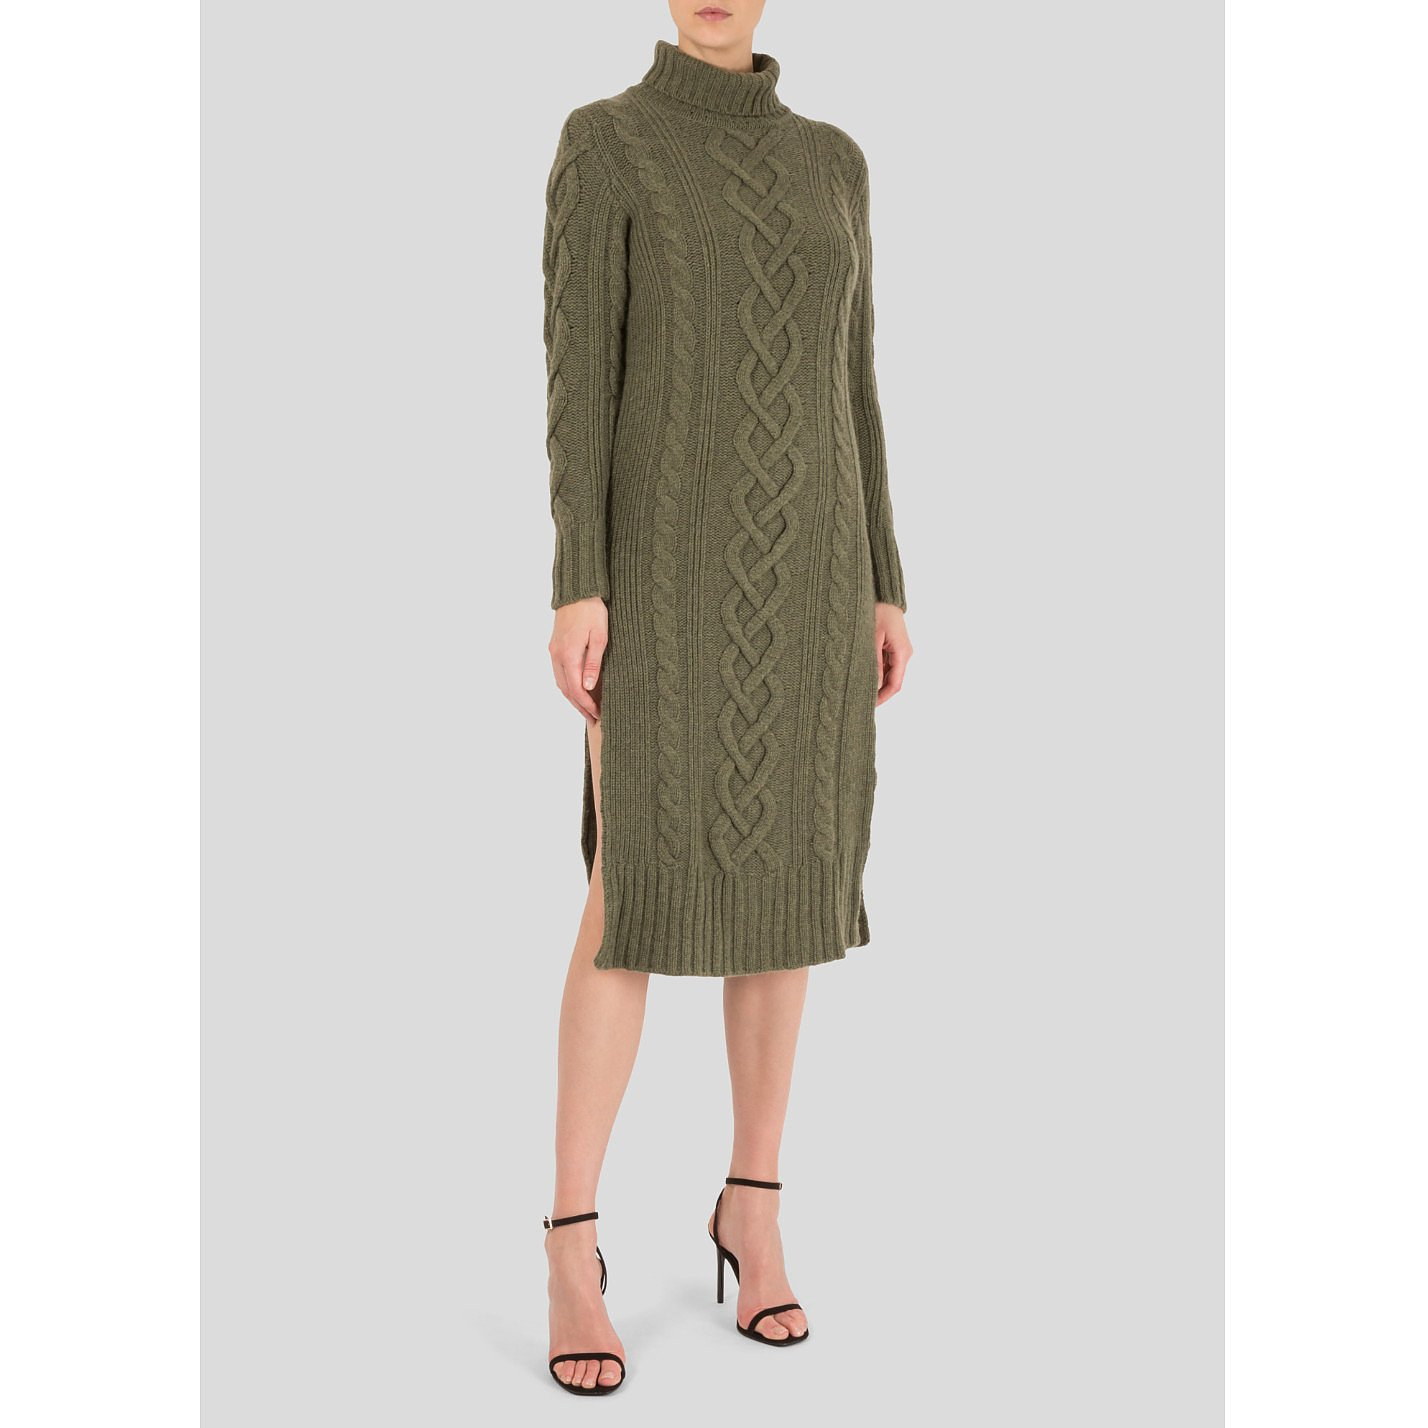 Christopher Kane Cable Knit Sweater Dress